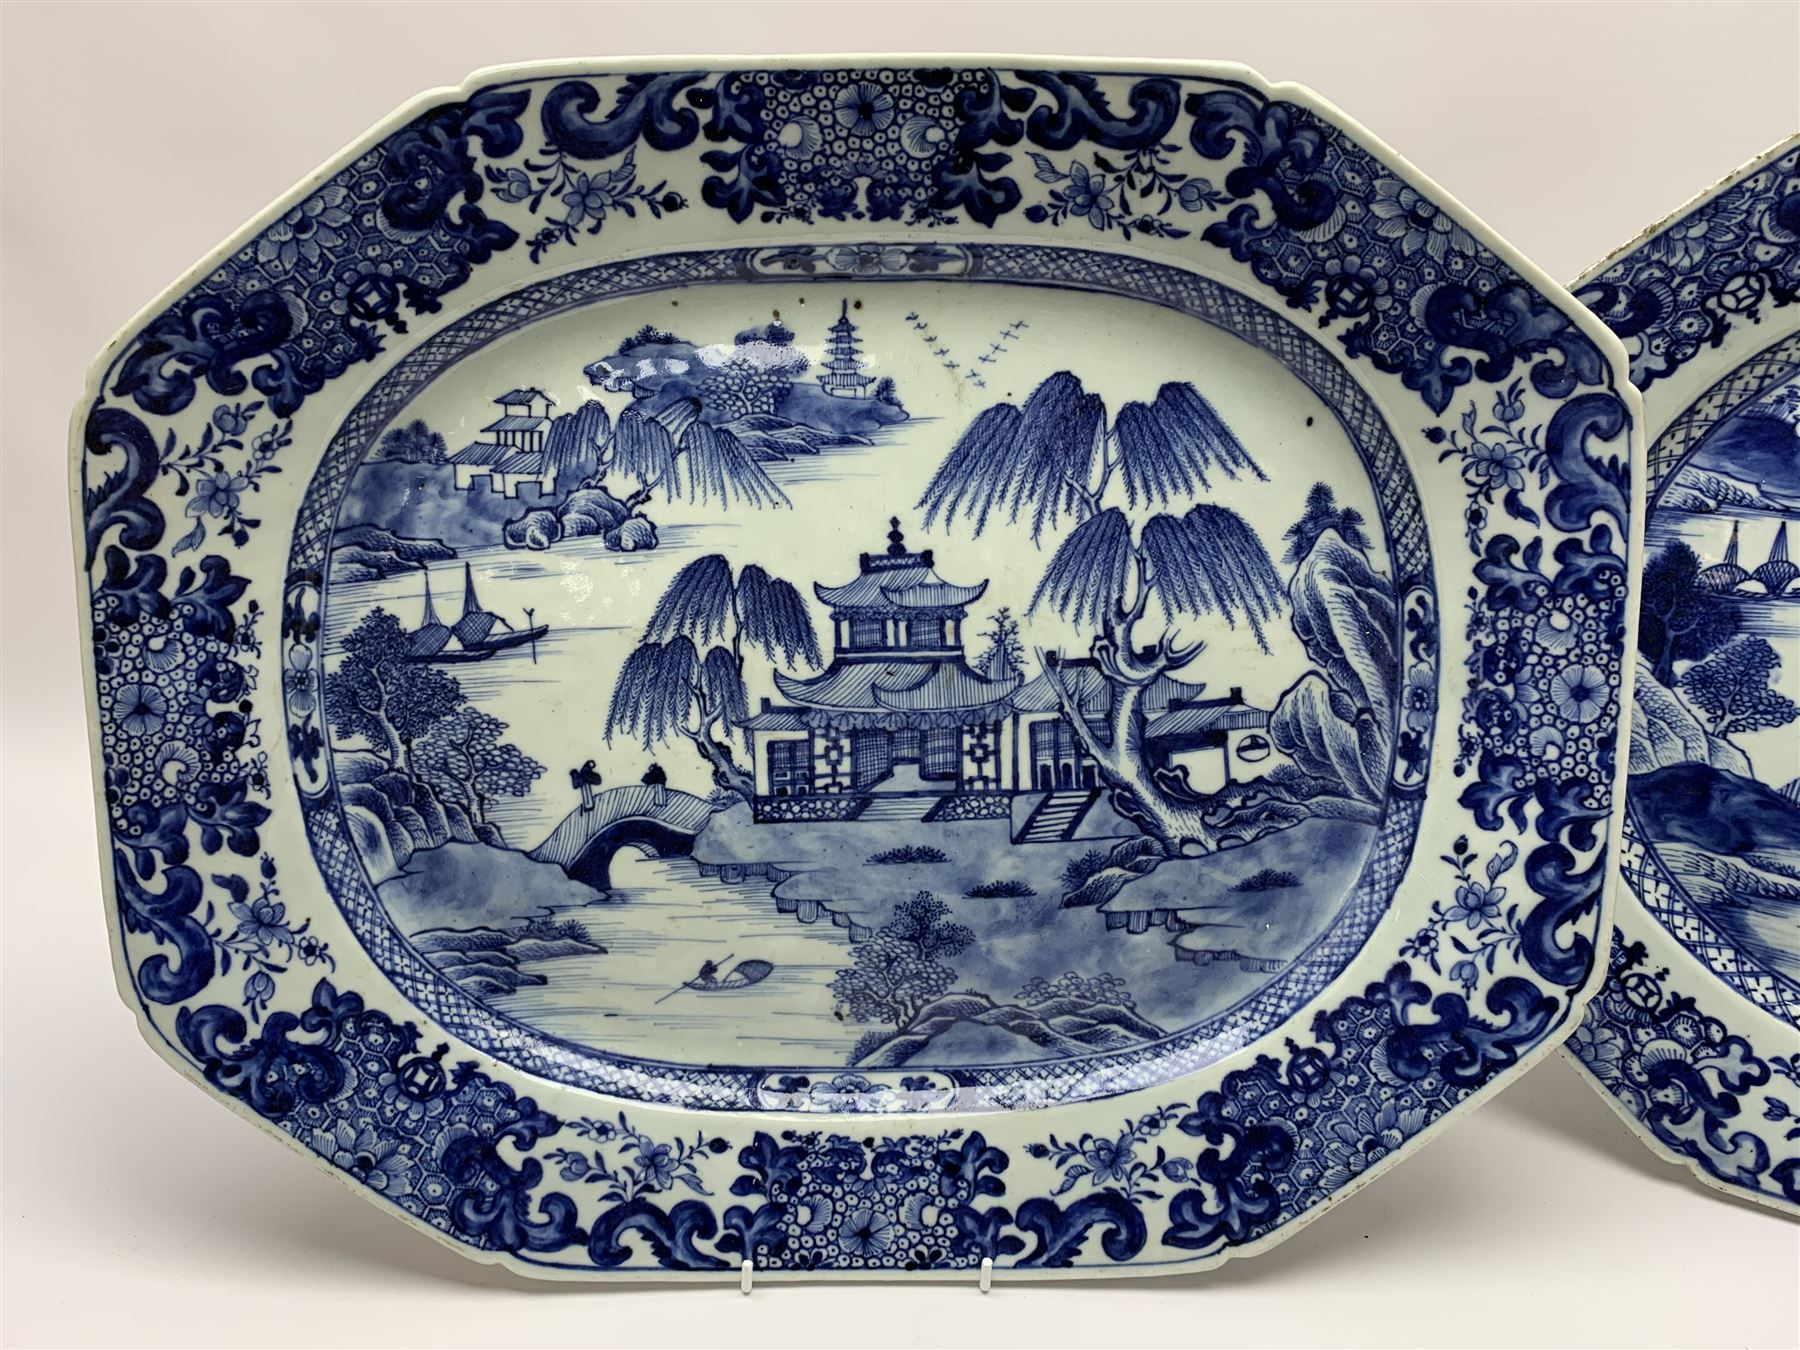 Pair of late 18th/early 19th century Chinese export blue and white platters - Image 2 of 5